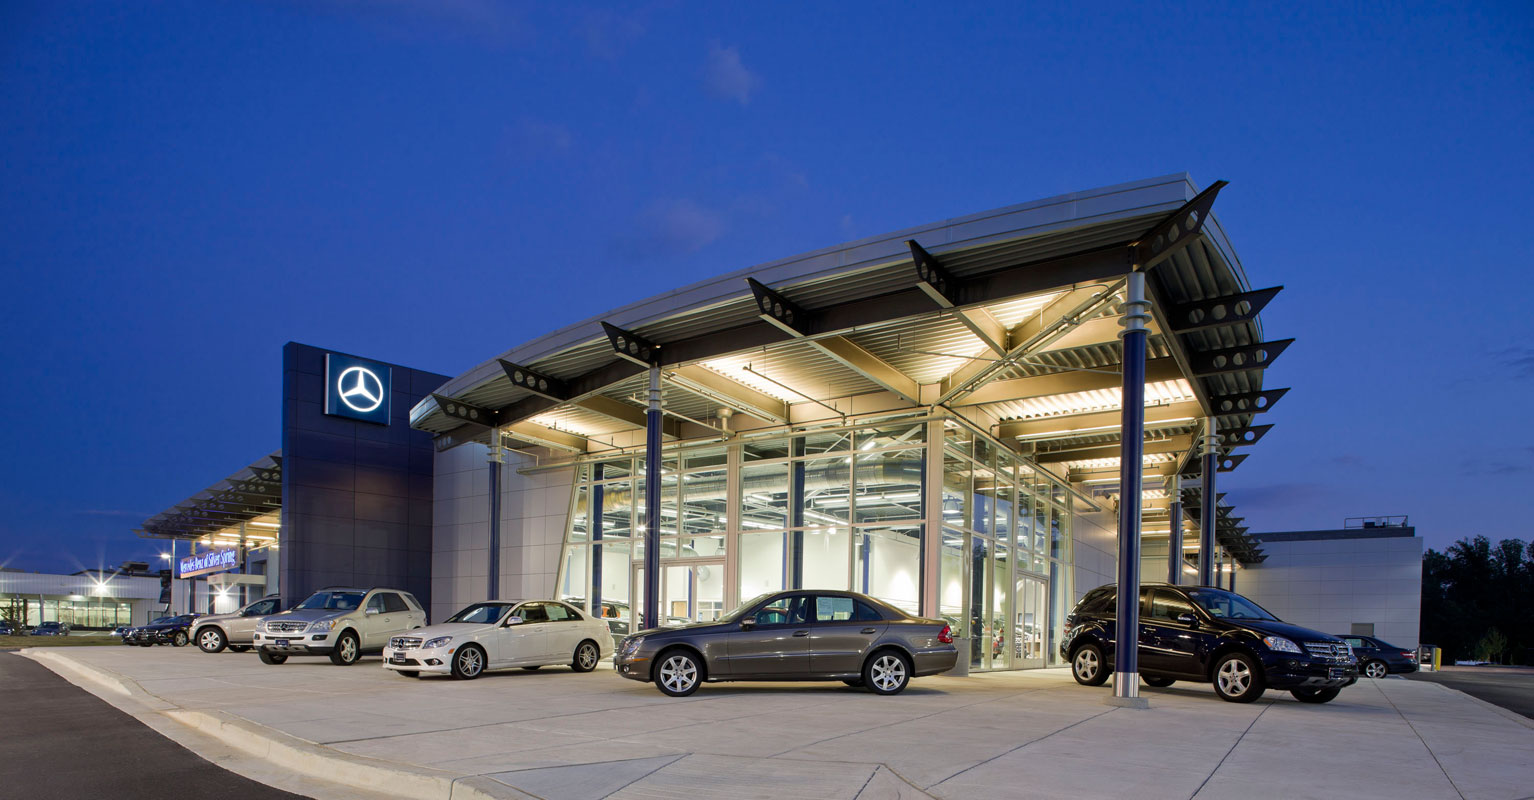 Mercedes Benz Dealership >> MERCEDES-BENZ OF SILVER SPRING - Penney Design Group